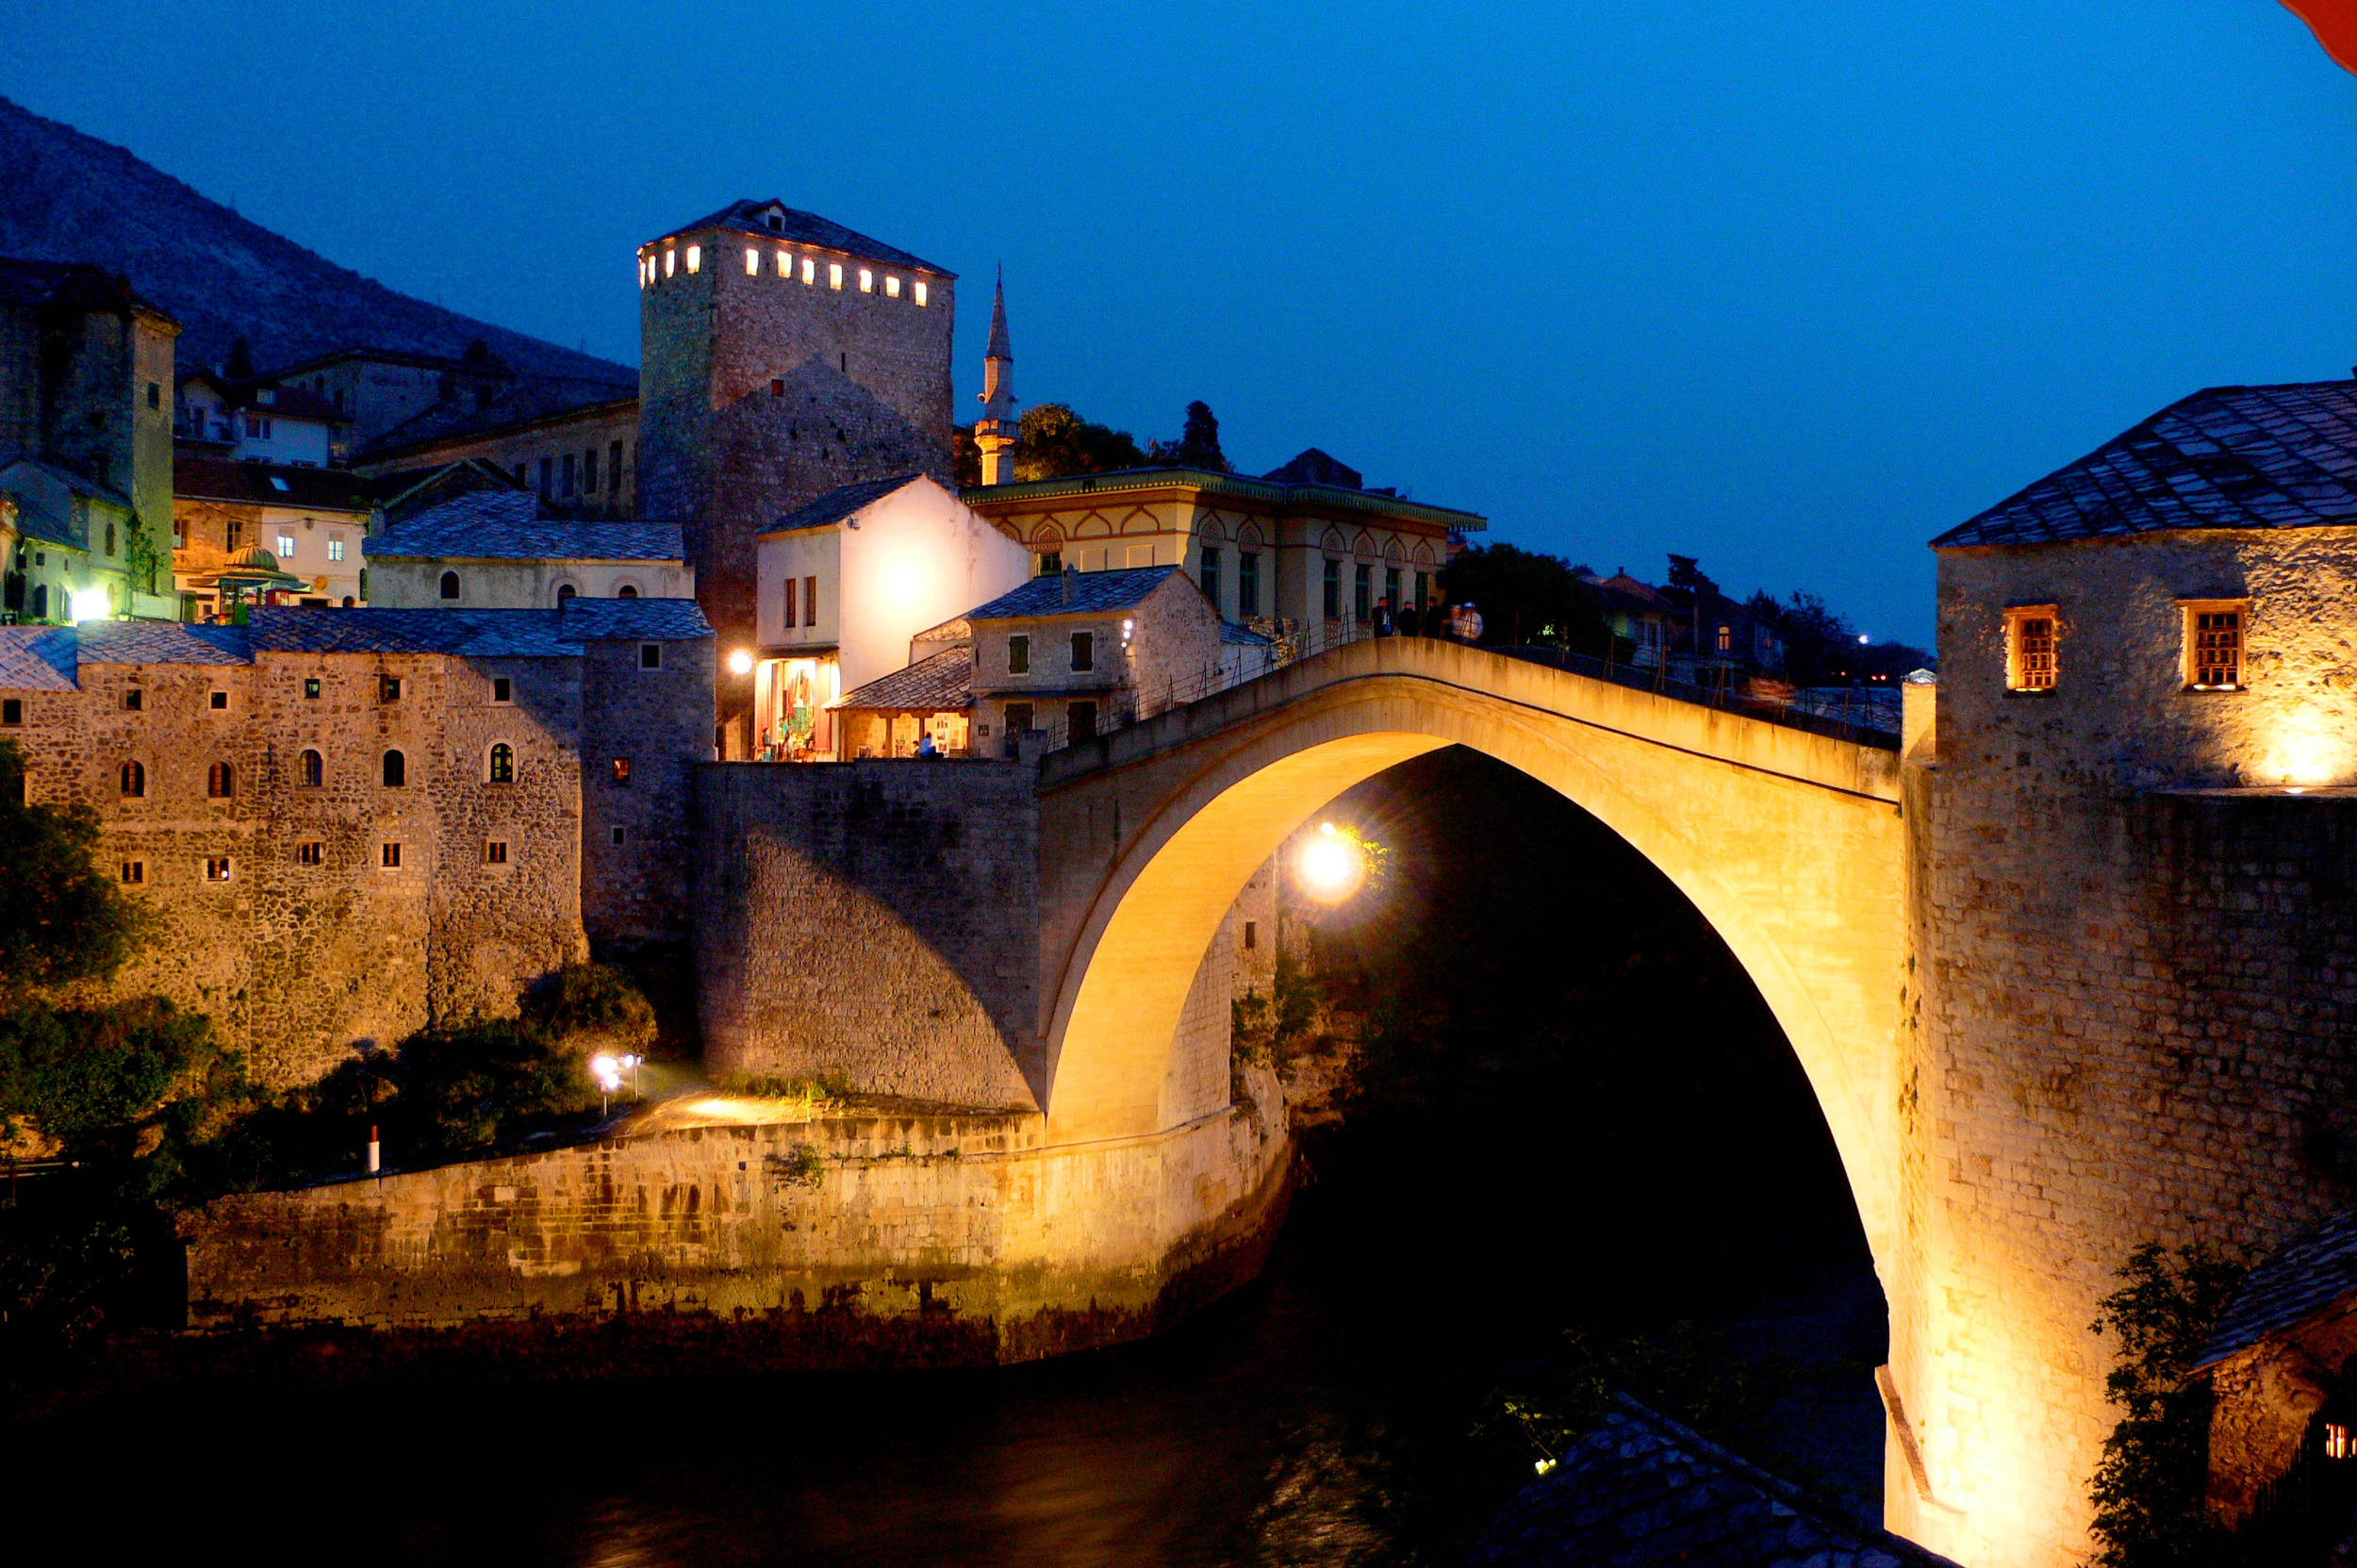 09 - Mostar Old Bridge.jpg